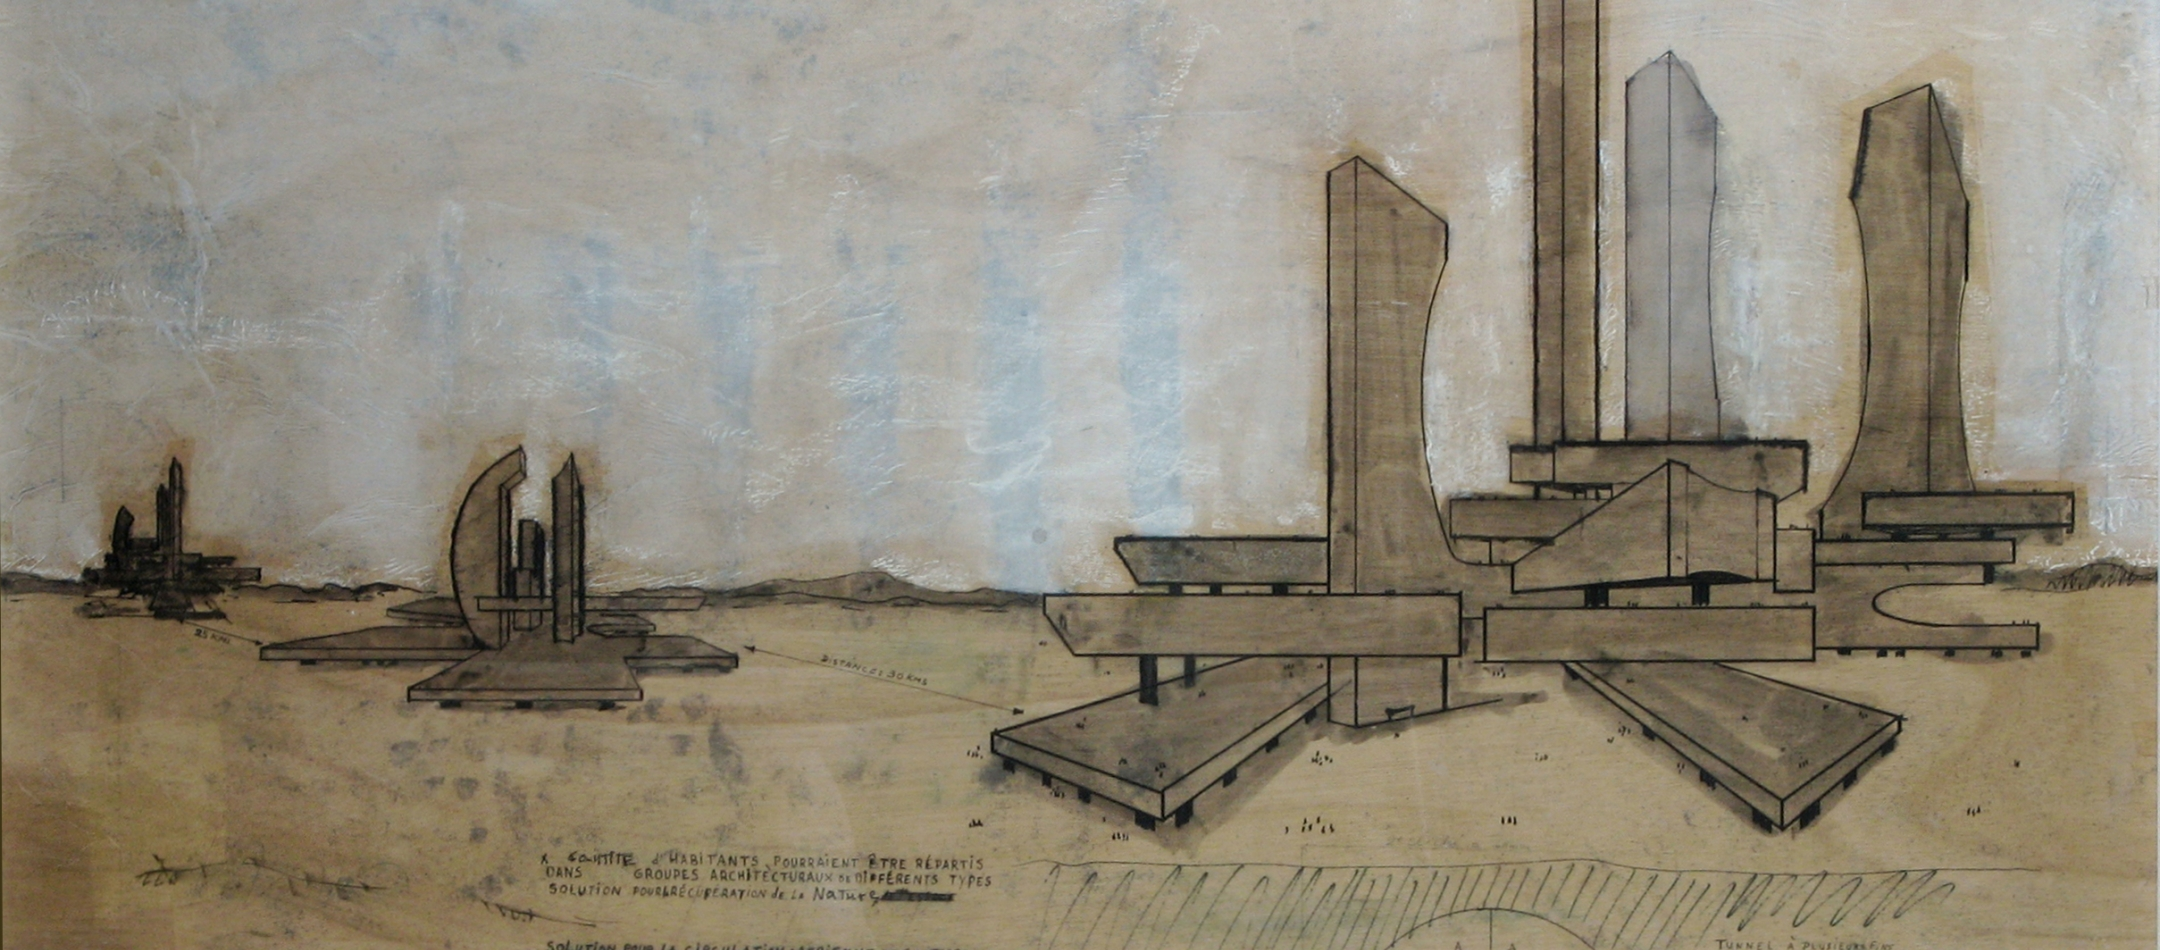 One of di Teana's meticulous sculptural-architectural drawings—planswhich he frequentlyexecuted in the conception of hiswork.